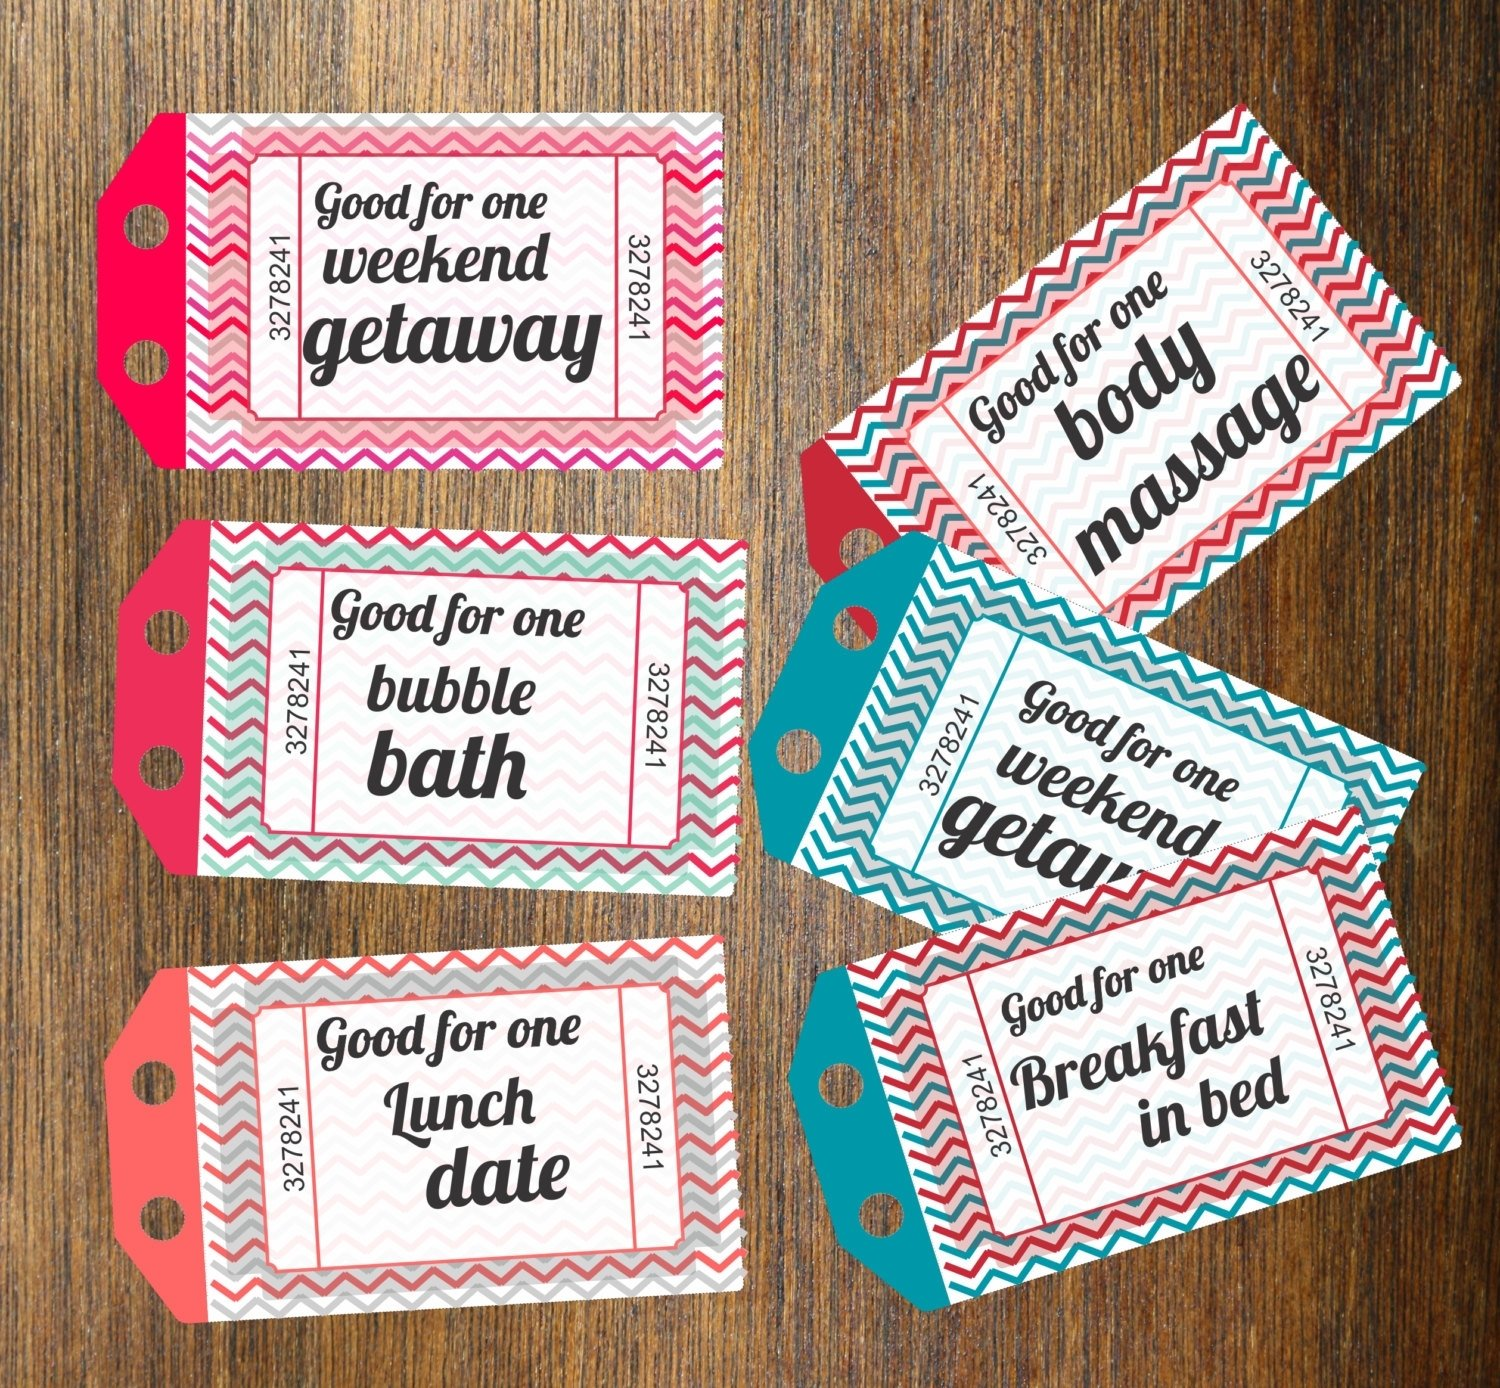 10 Attractive Valentine Coupon Book Ideas For Guys creative teens teddy bear valentines day gifts in valentines day 2